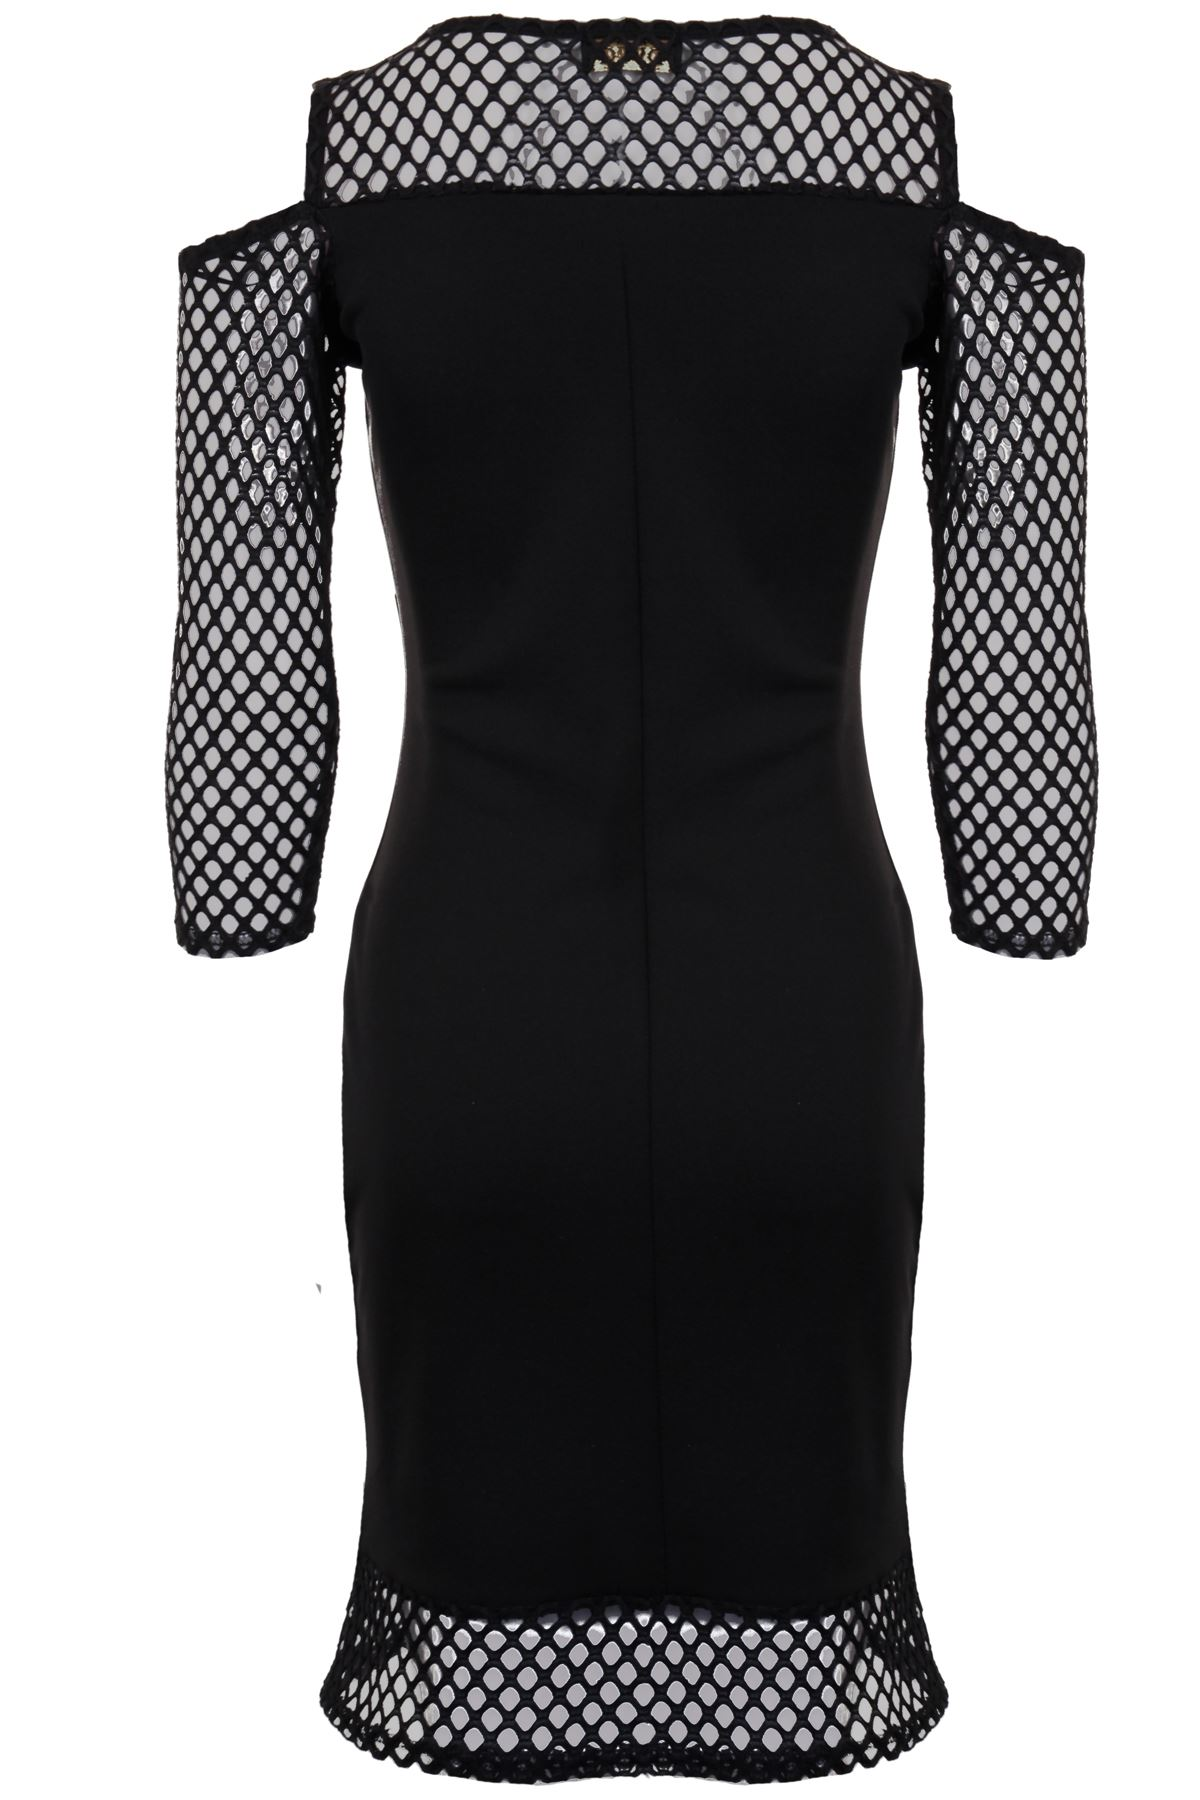 6825be8ae65 Details about Women's Cut Out Cold Shoulder Mesh Fishnet Long Sleeve V  Front Bodycon Dress